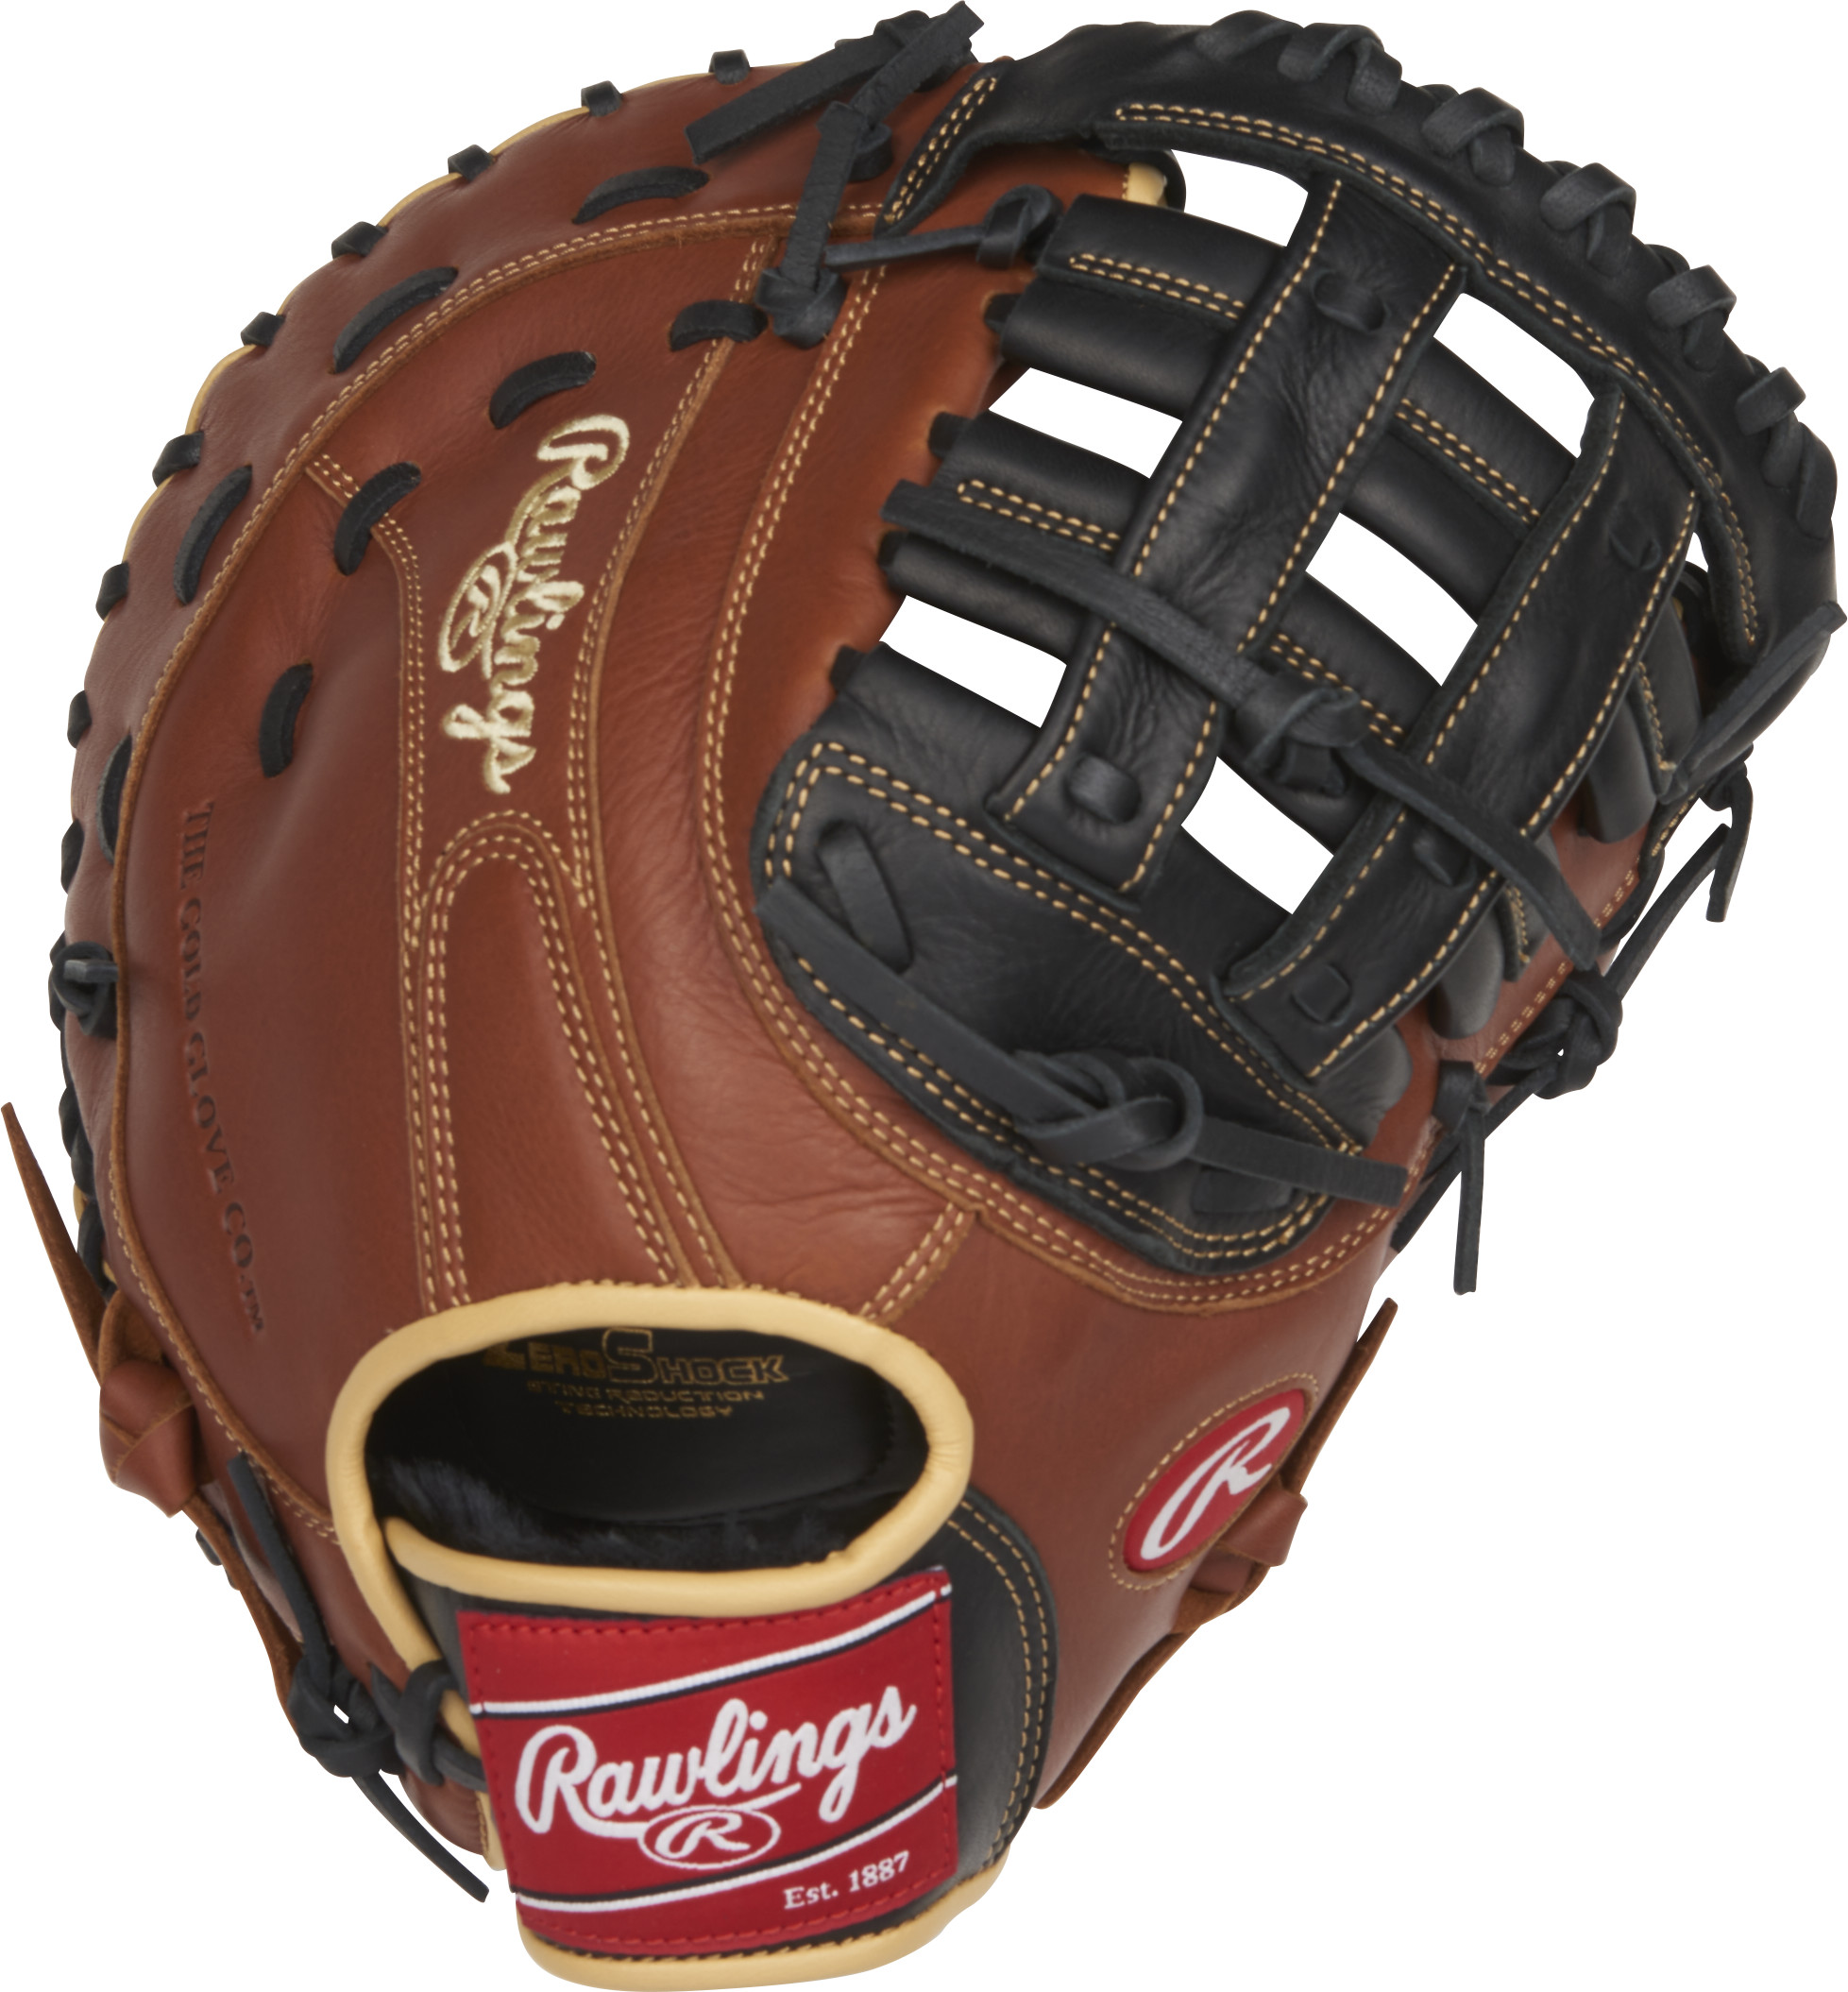 http://www.bestbatdeals.com/images/gloves/rawlings/SFM18-2.jpg